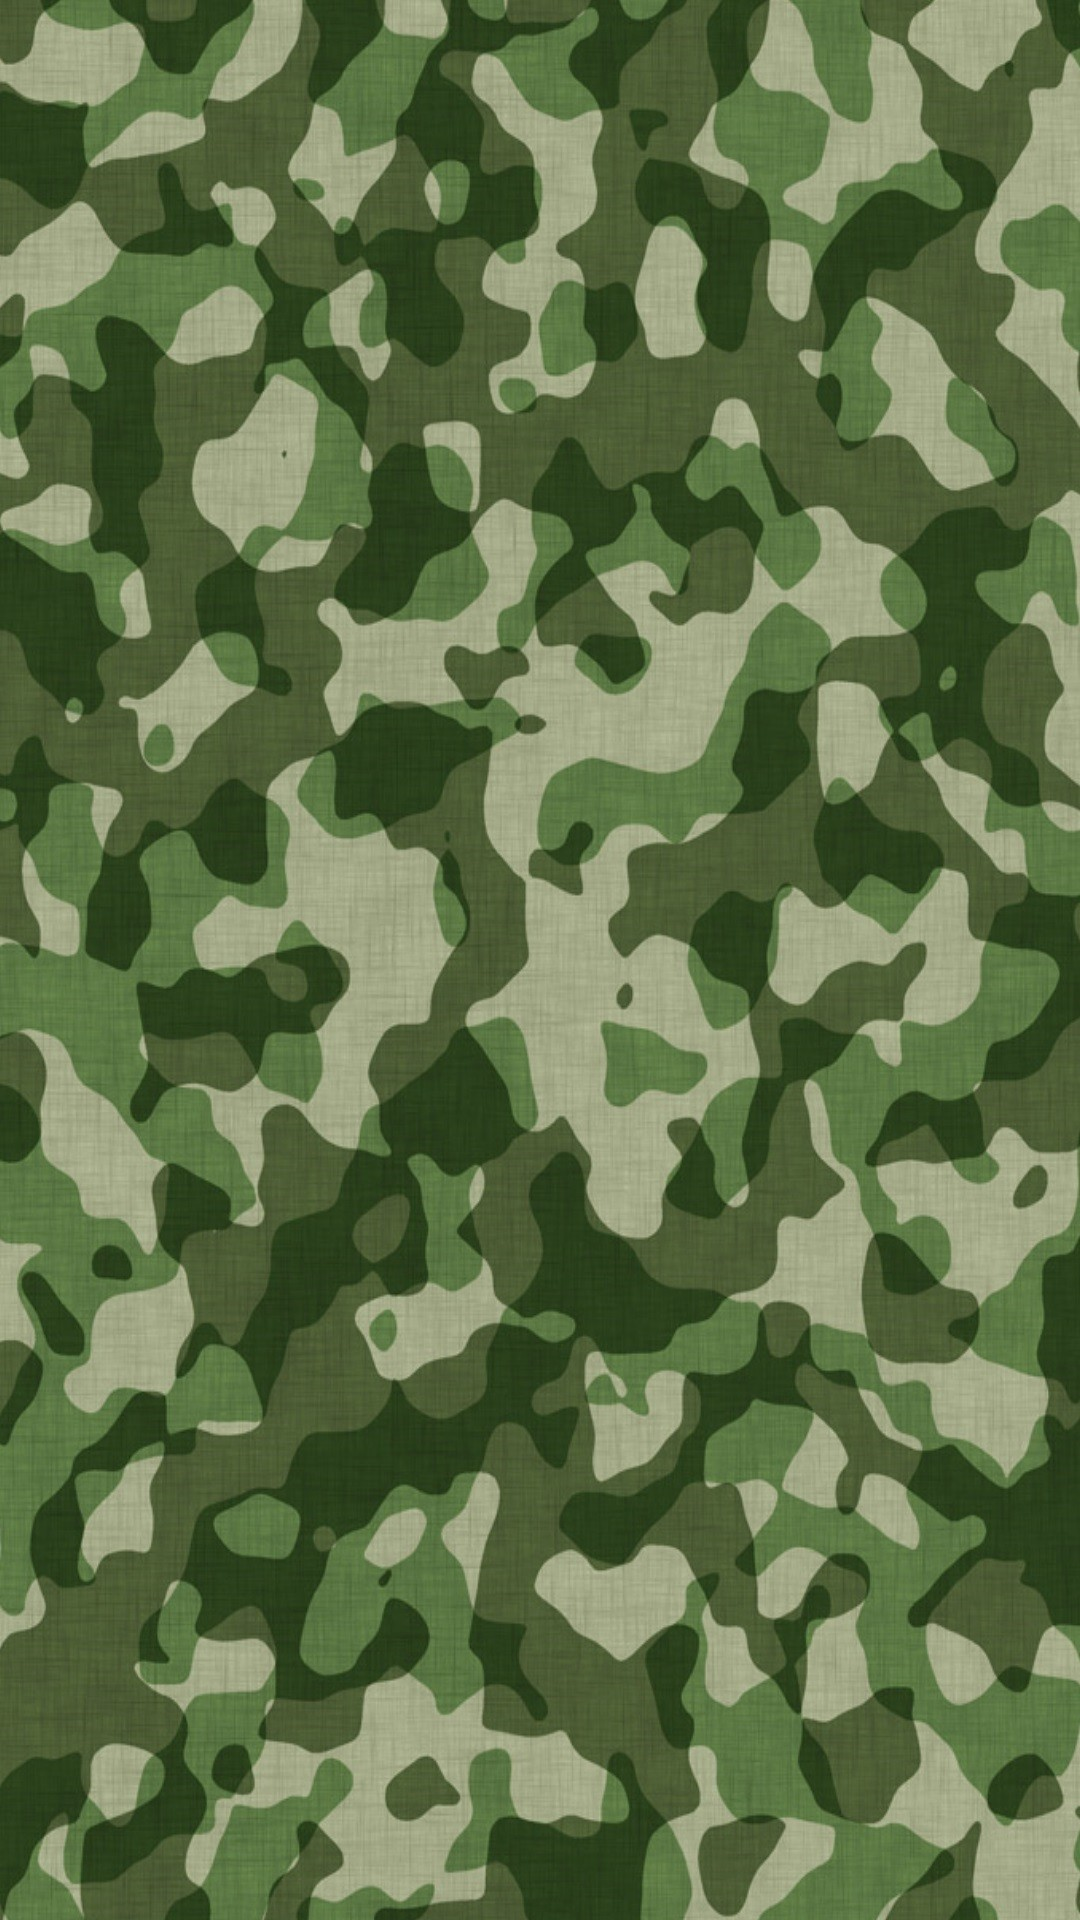 Woodland Camo Wallpaper ·① WallpaperTag